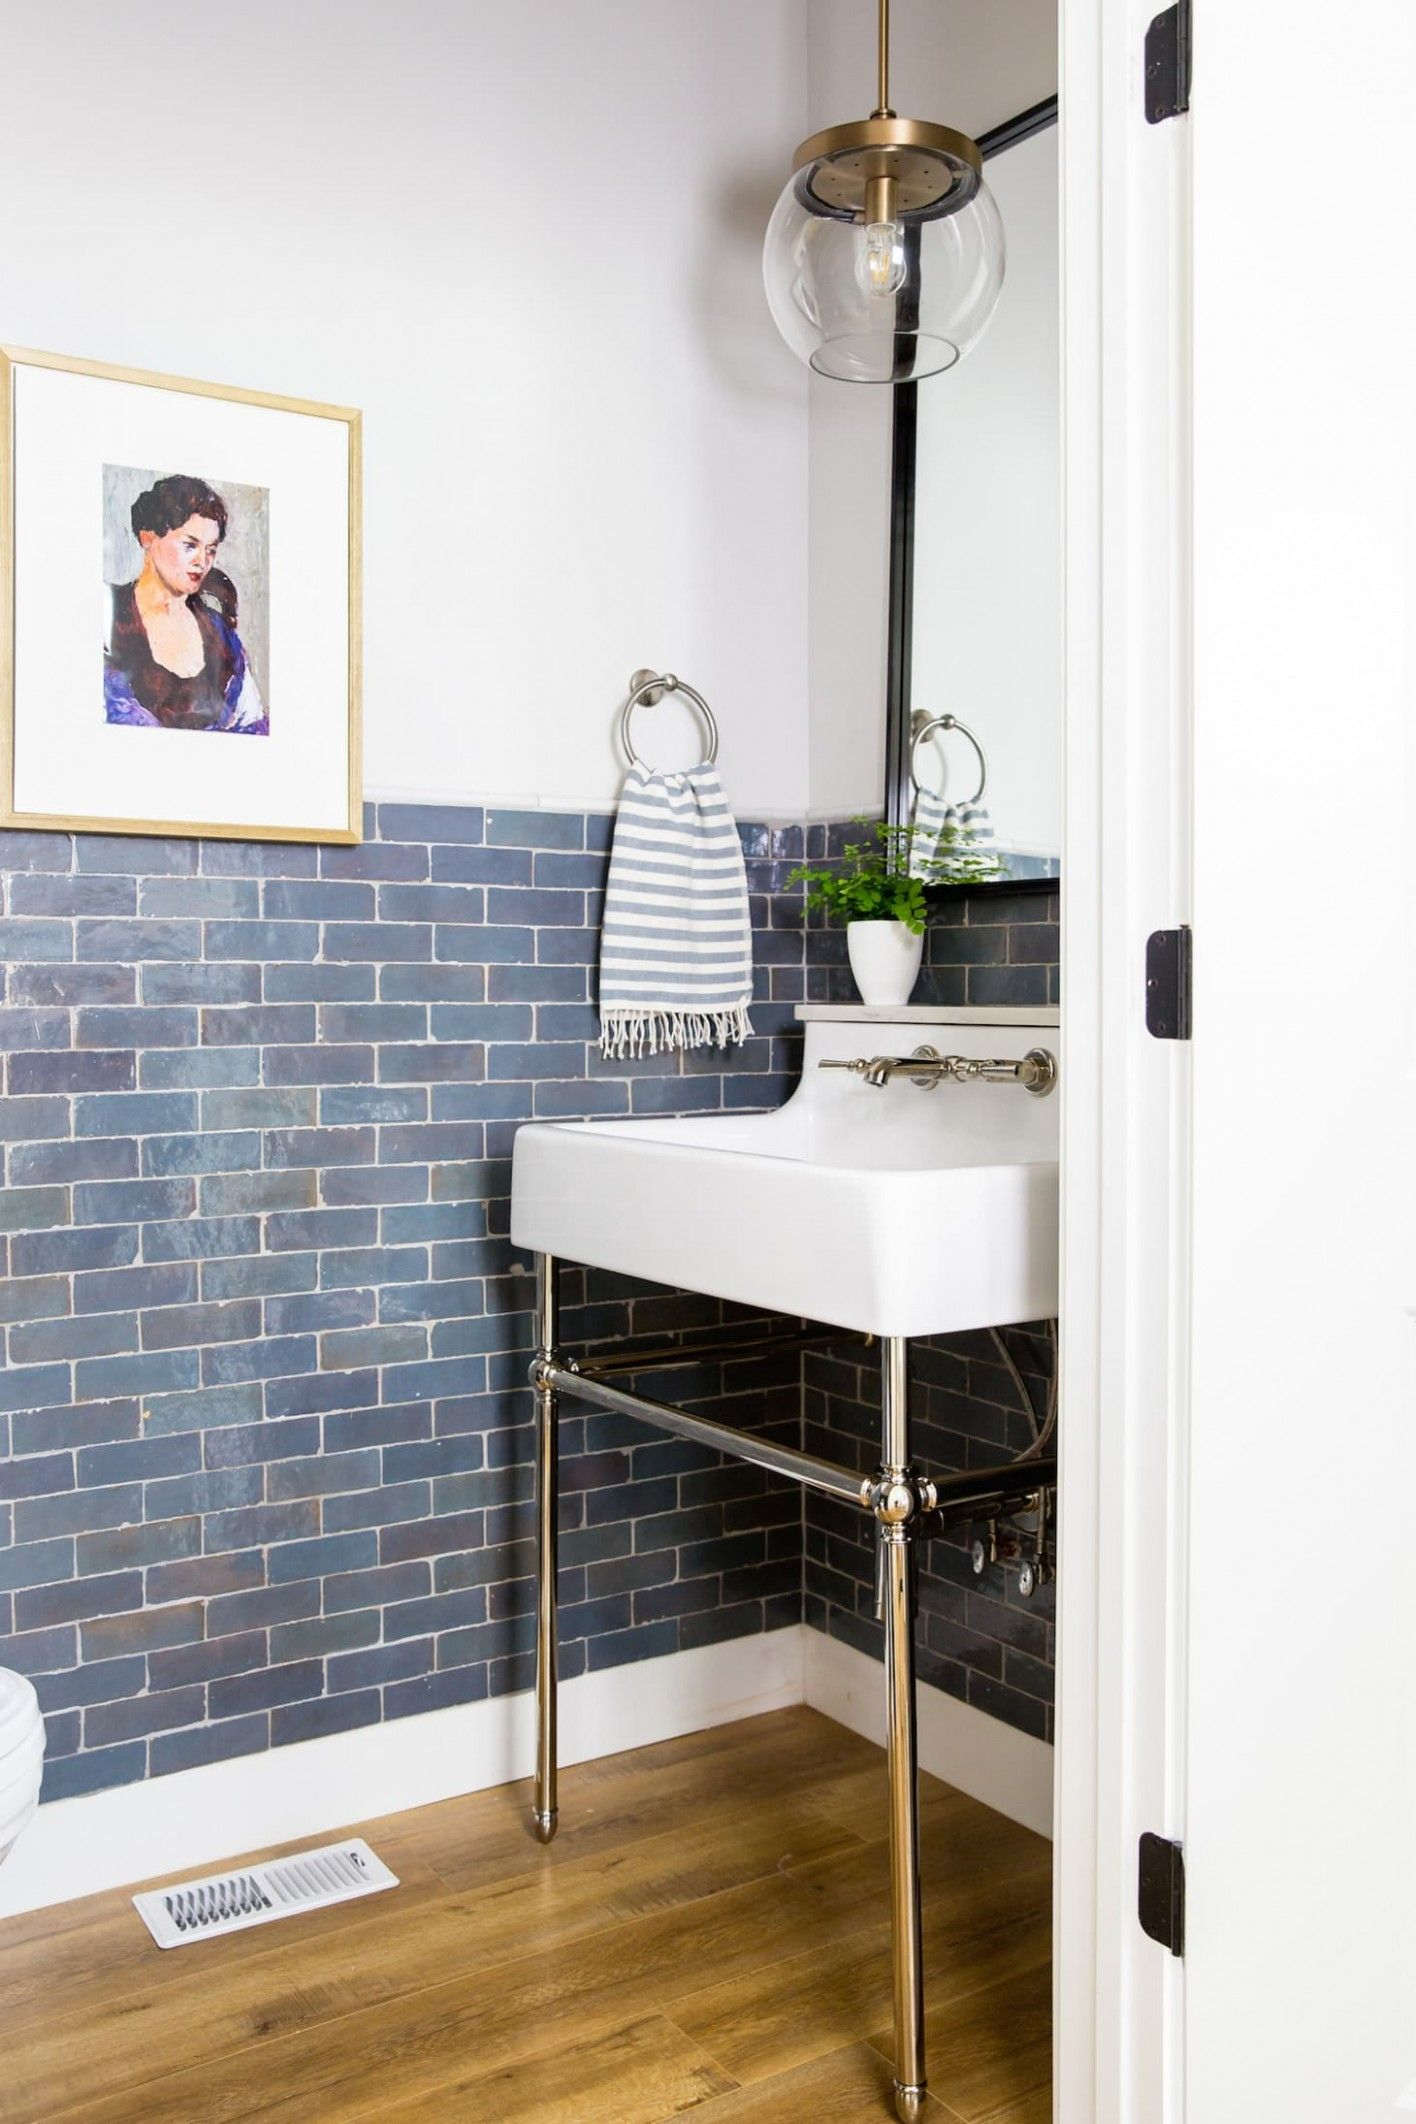 Small Bathroom Remodel Apartment Therapy Bathroom Design Small Small Bathroom Remodel Bathrooms Remodel